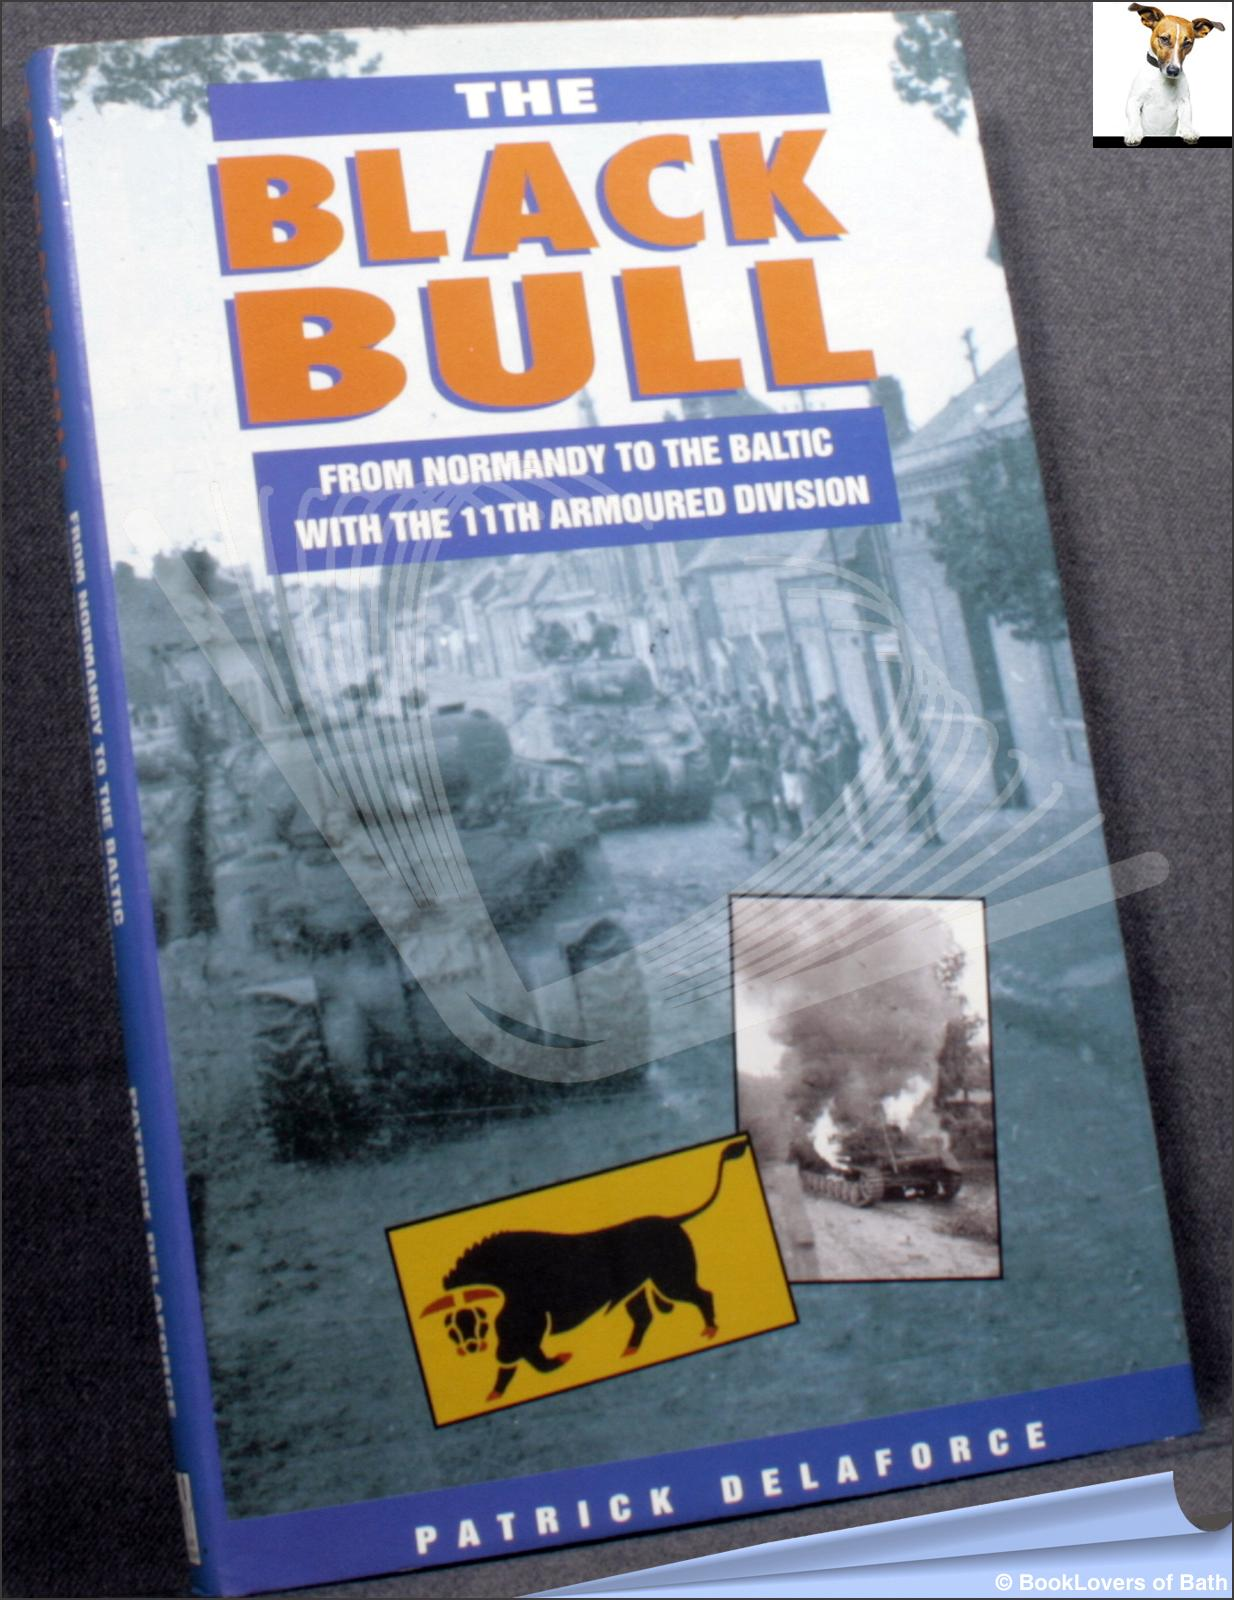 The Black Bull: From Normandy to the Baltic with the 11th Armoured Division - Patrick Delaforce